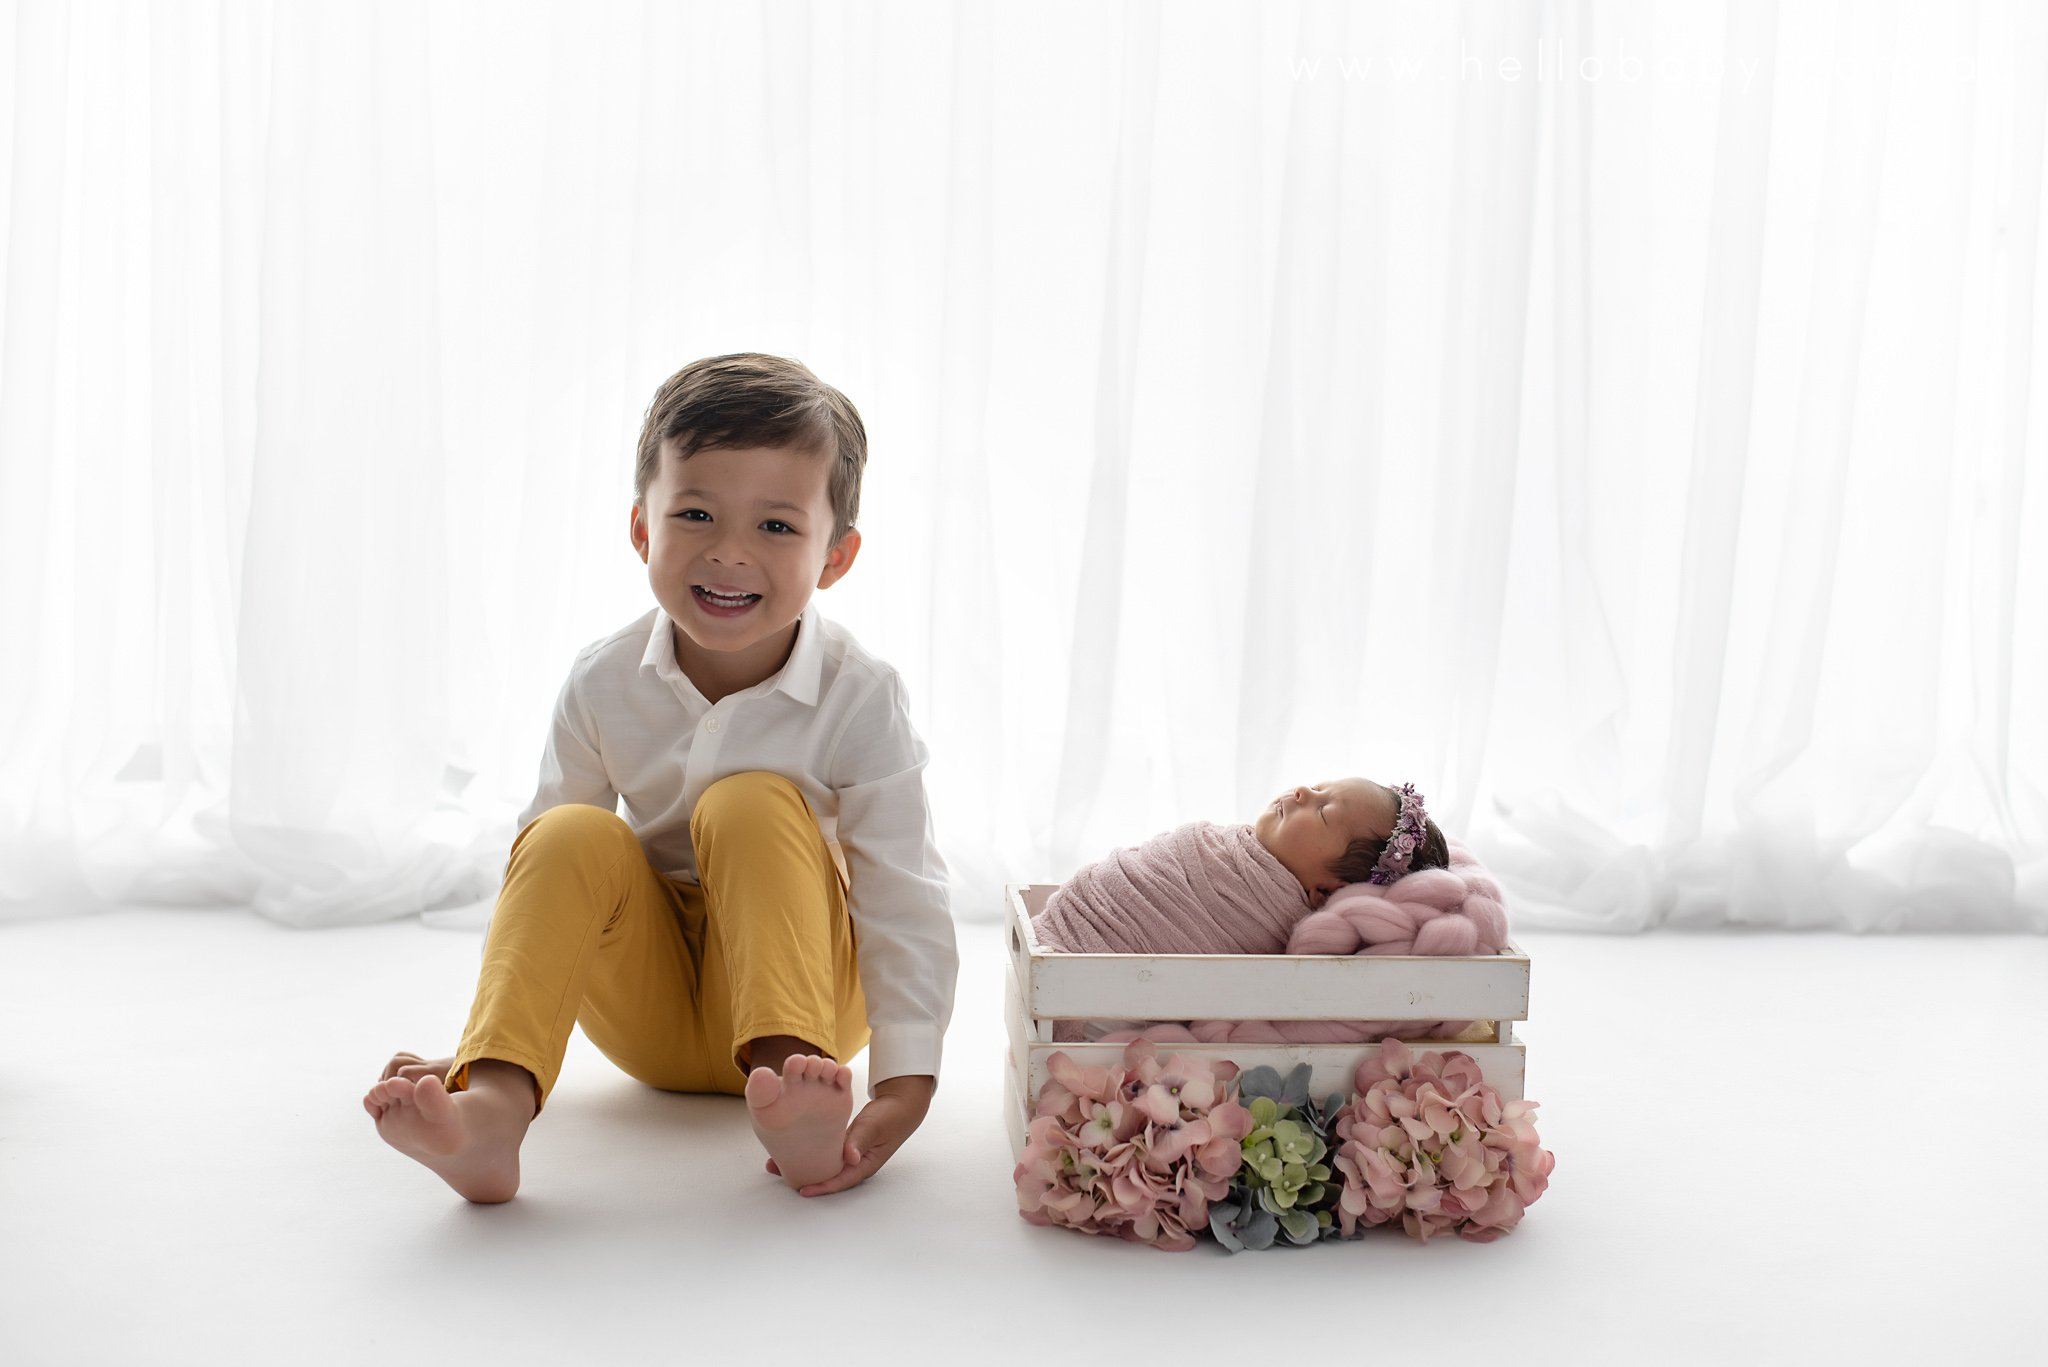 A 3 year old little boy wearing a white shirt and a yellow pair of trousers sitting next to his newborn baby sister who is wrapped in pink and placed in a white basket surrounded by pink and green flowers